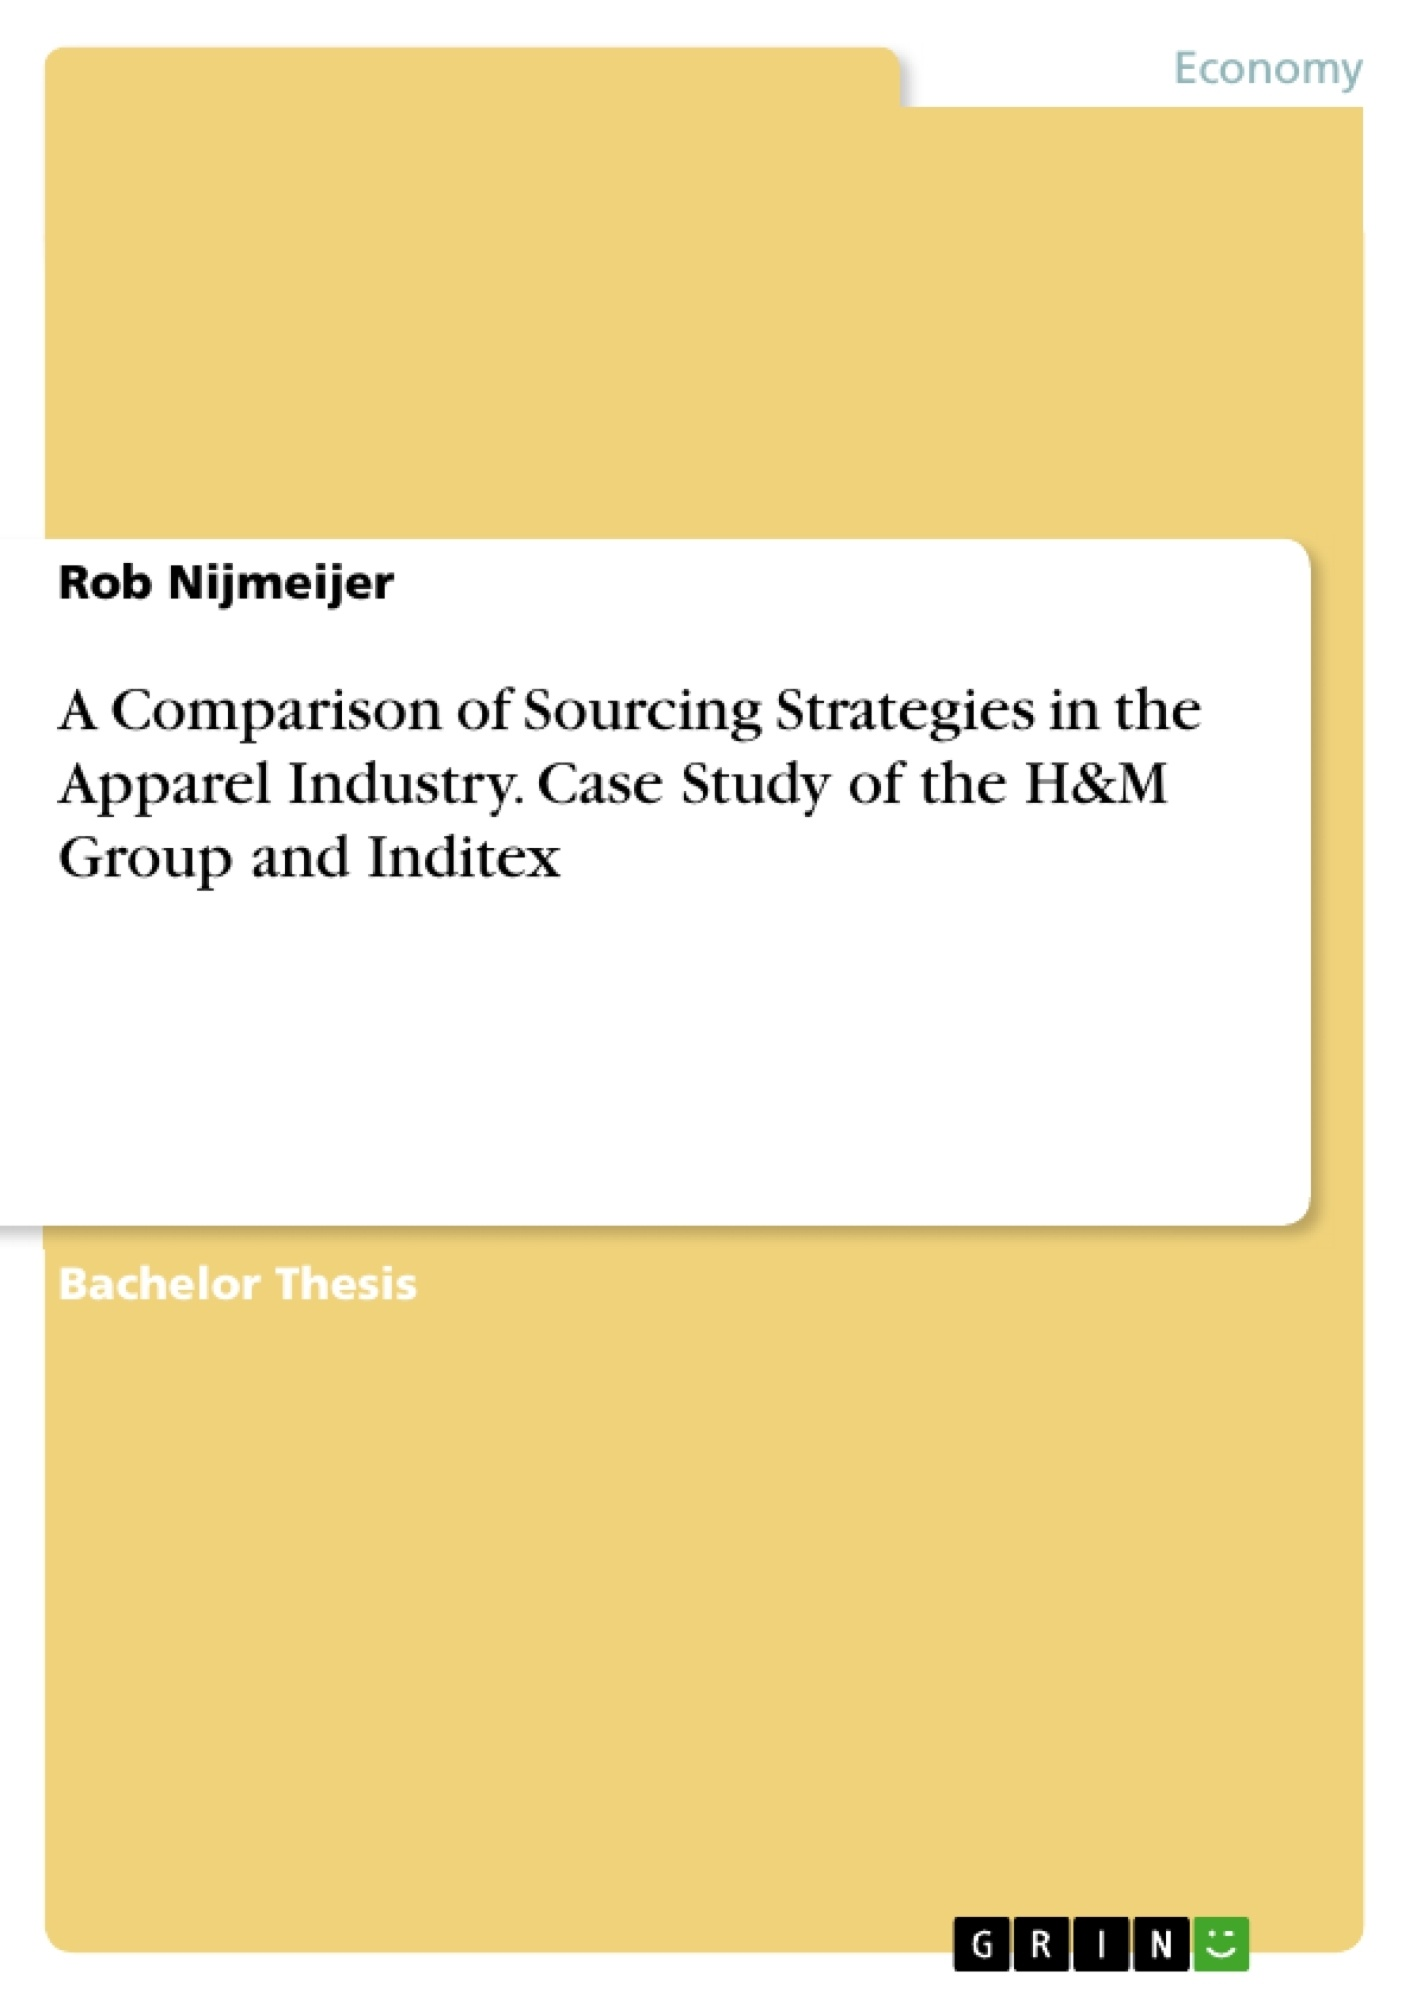 Title: A Comparison of Sourcing Strategies in the Apparel Industry. Case Study of the H&M Group and Inditex